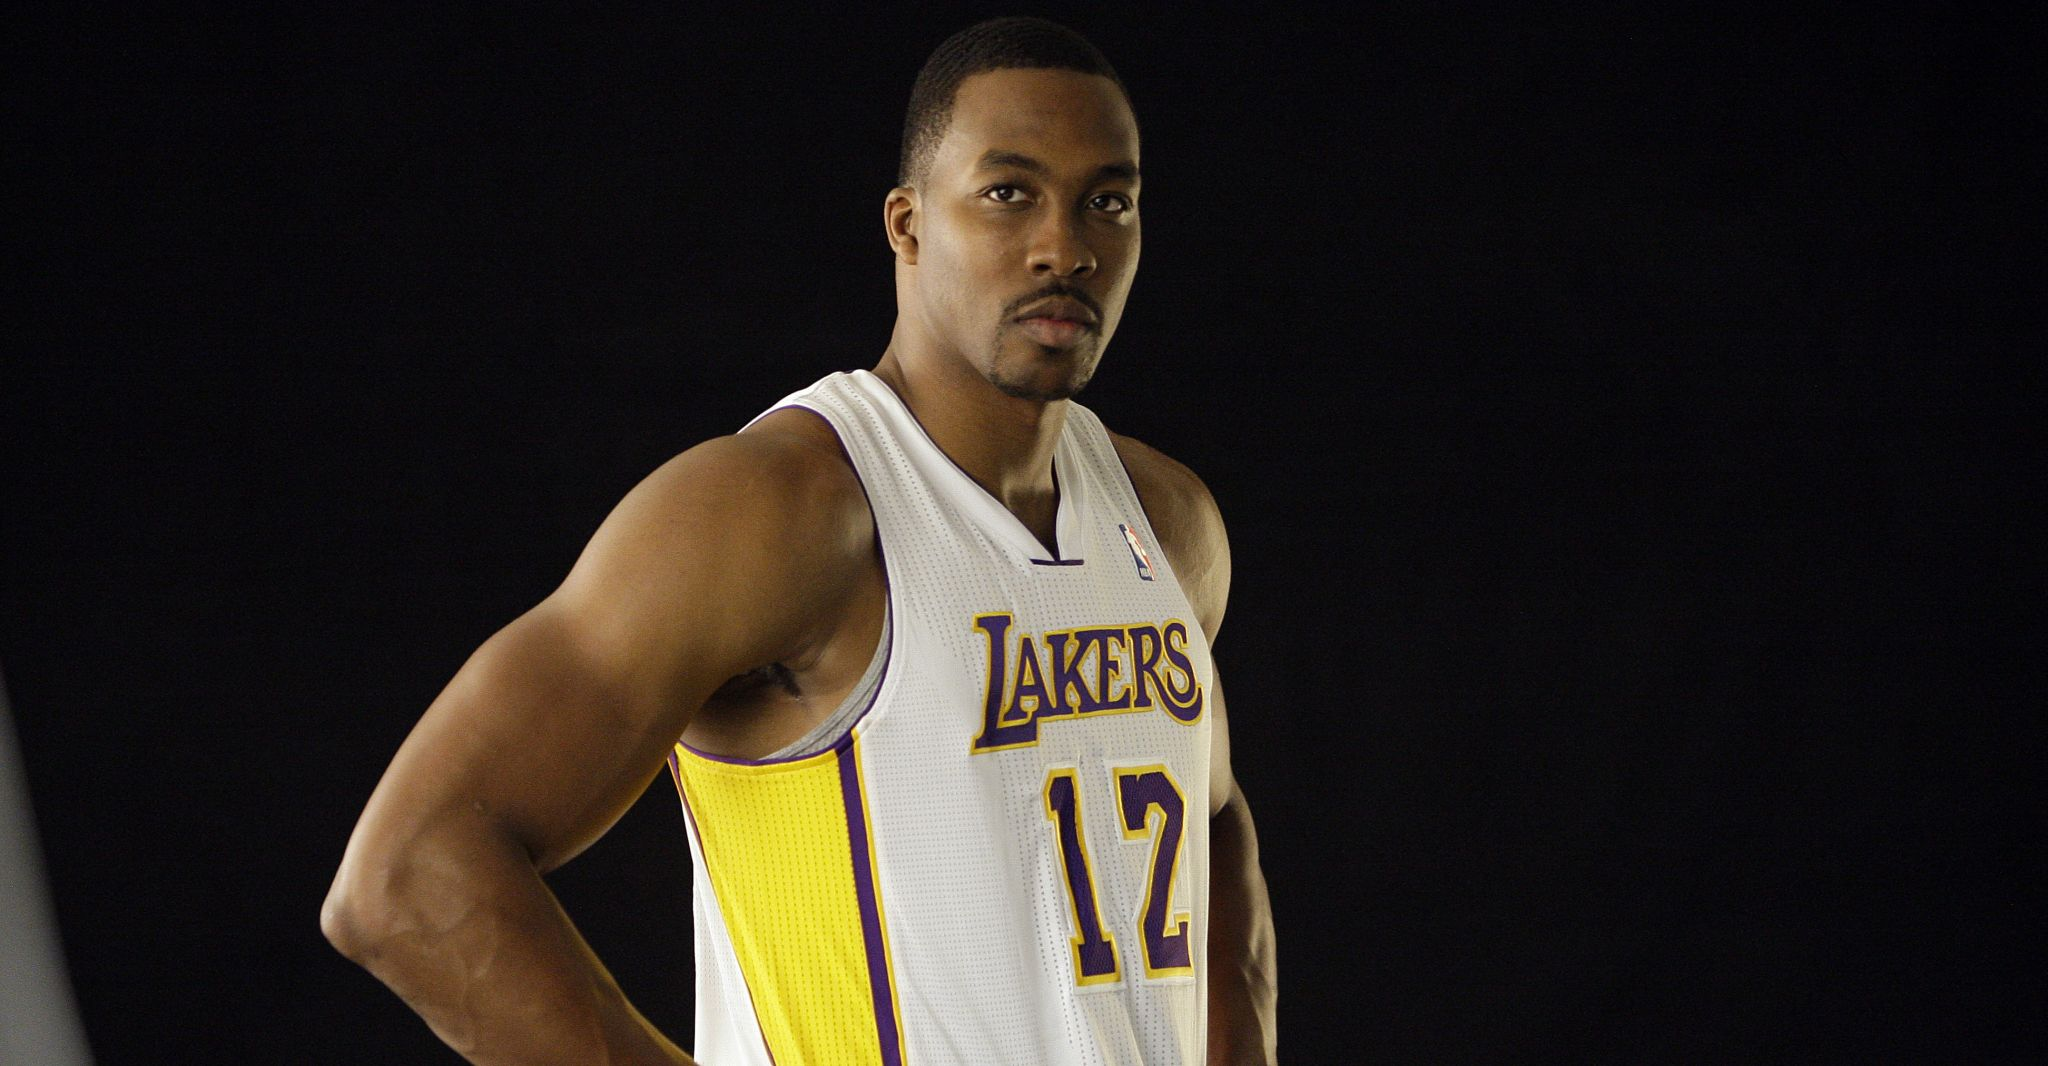 Report: Lakers plan to sign Dwight Howard